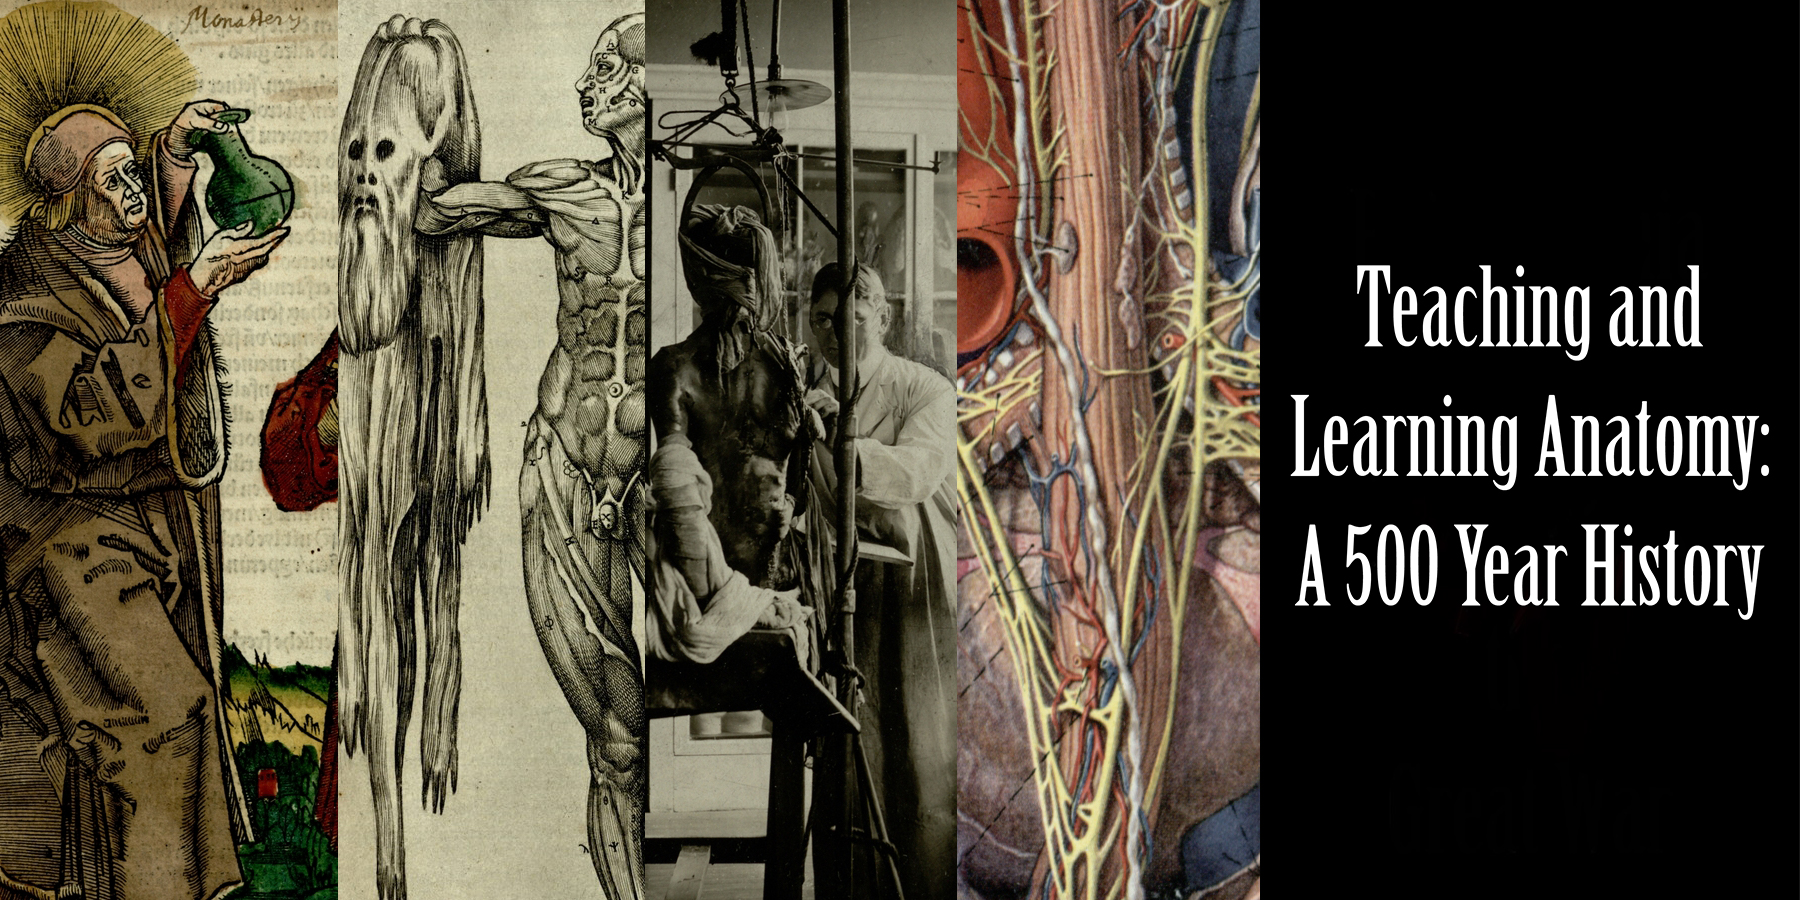 Teaching and Learning Anatomy: A 500 Year History